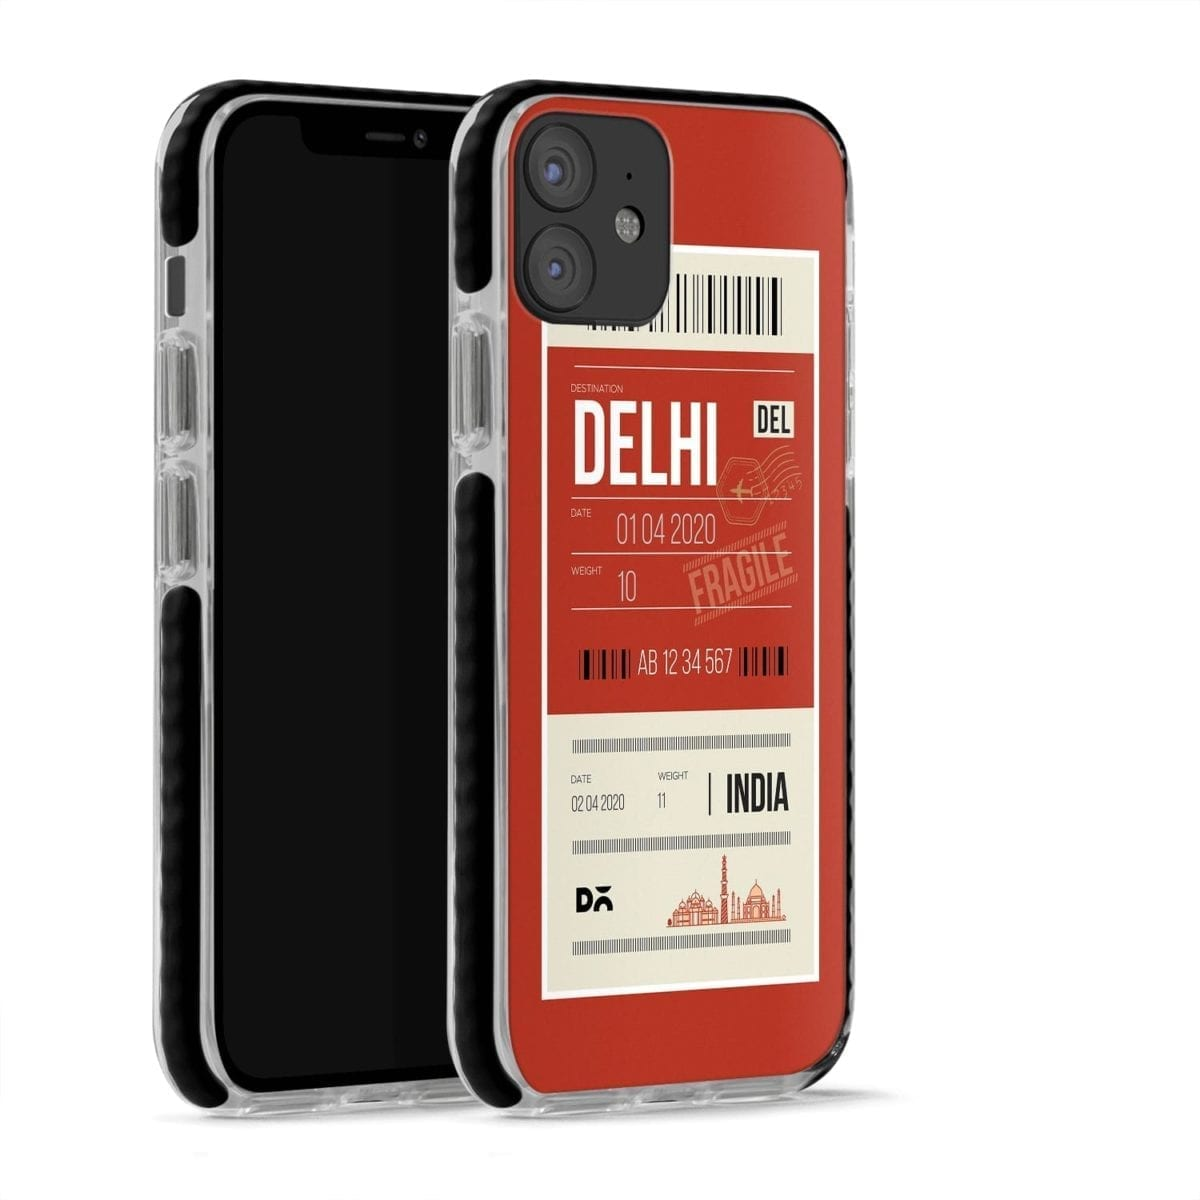 Delhi City Tag Stride Case Cover for Apple iPhone 12 Mini and Apple iPhone 12 with great design and shock proof | Klippik | Online Shopping | Kuwait UAE Saudi